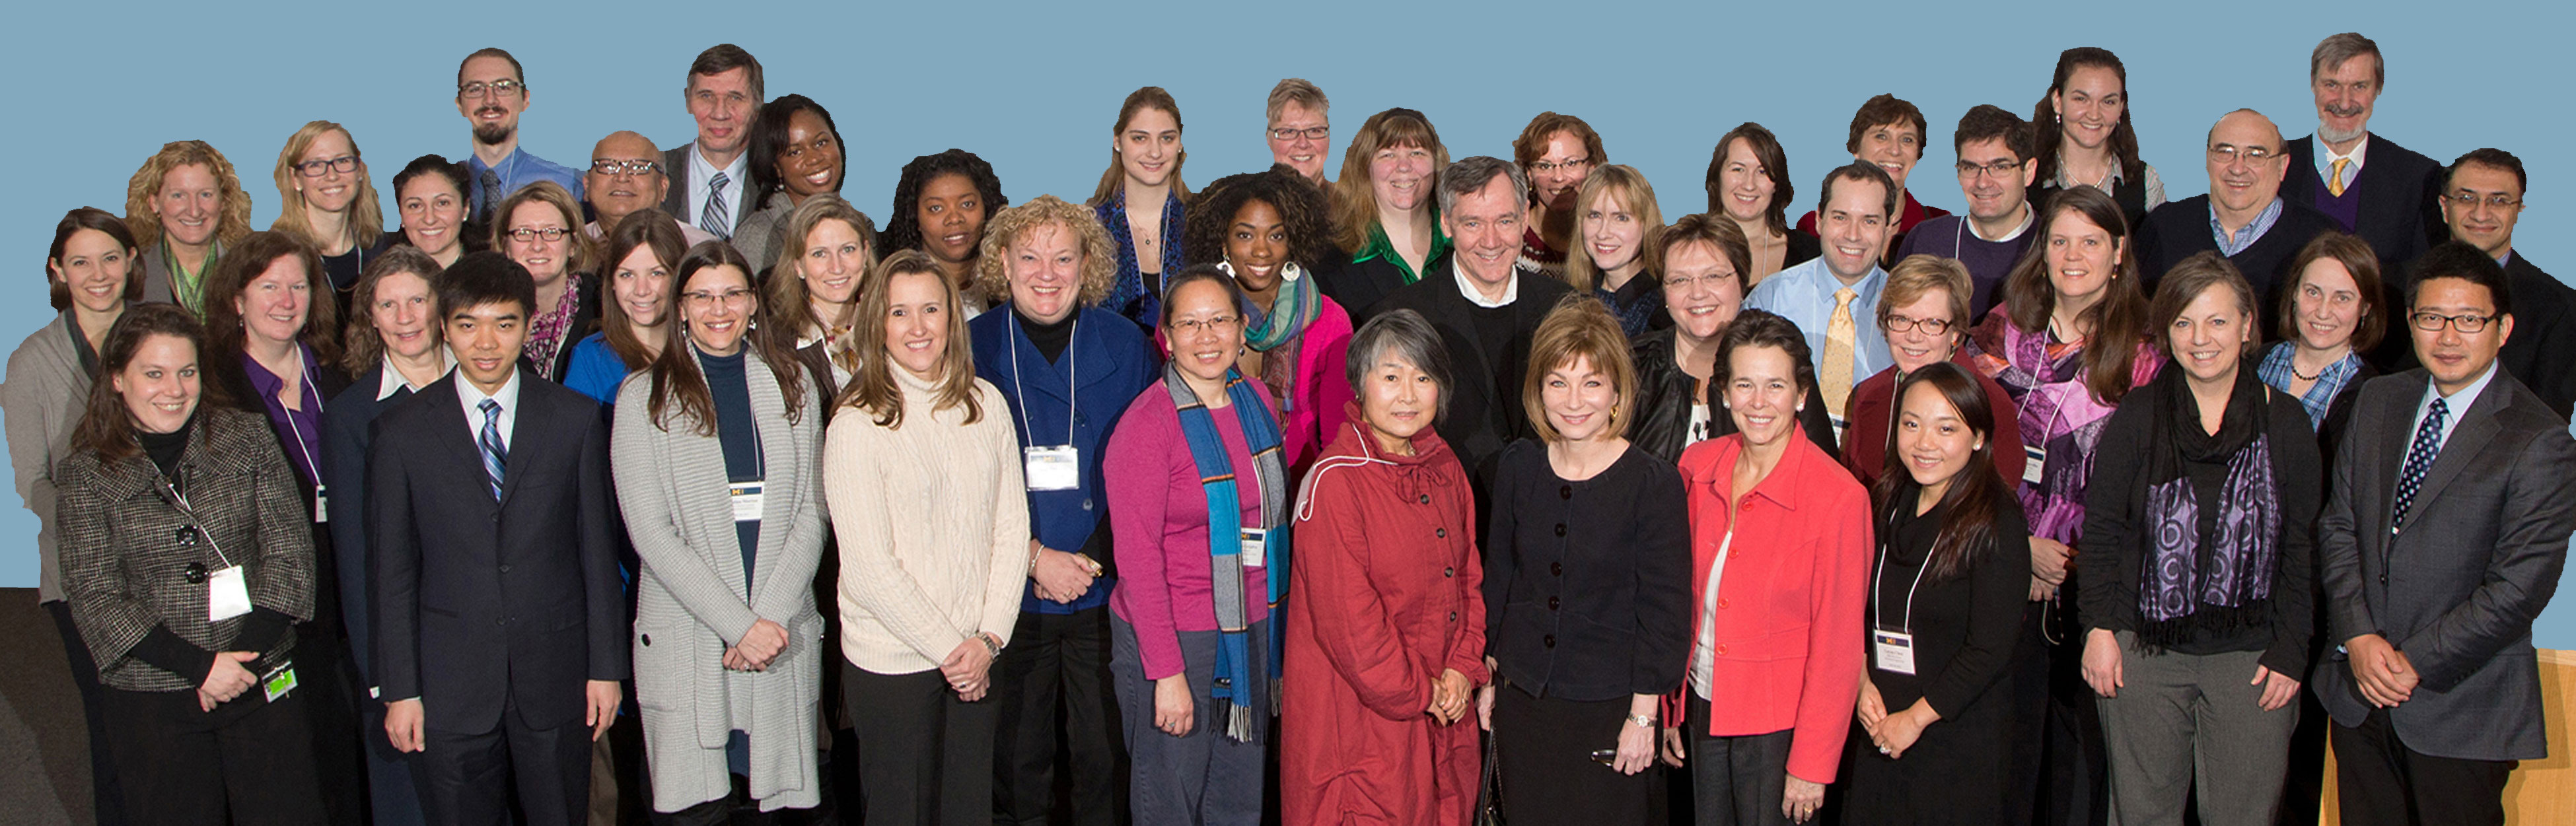 Pelvic Floor Research Group Day Group Photo